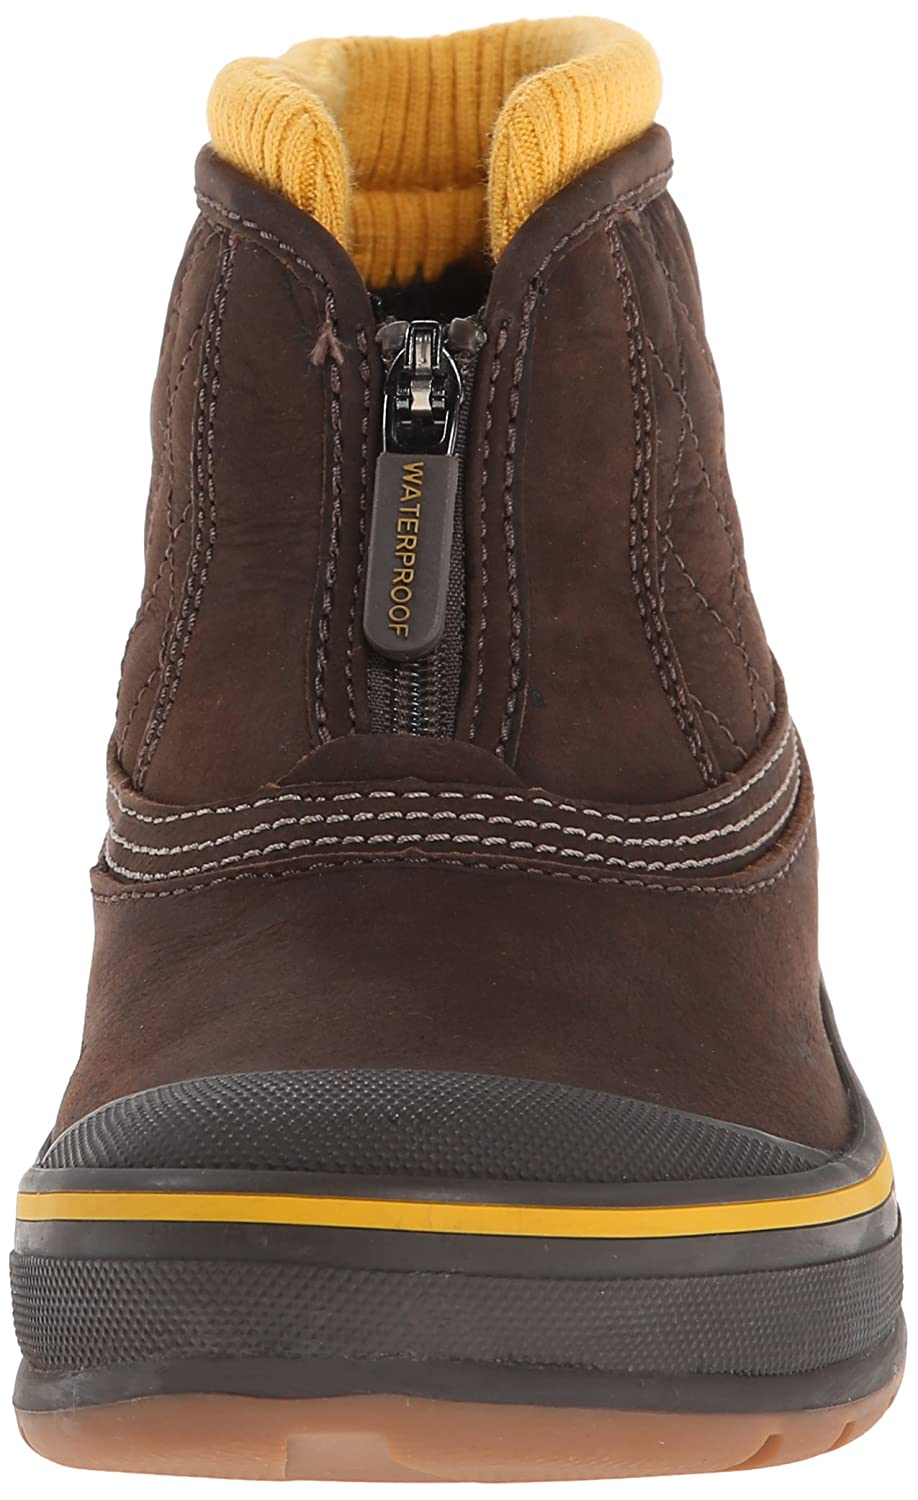 Et Muckers Chaussures Neige Boot Qwfpeni Slope Sacs Clarks PxHqwH